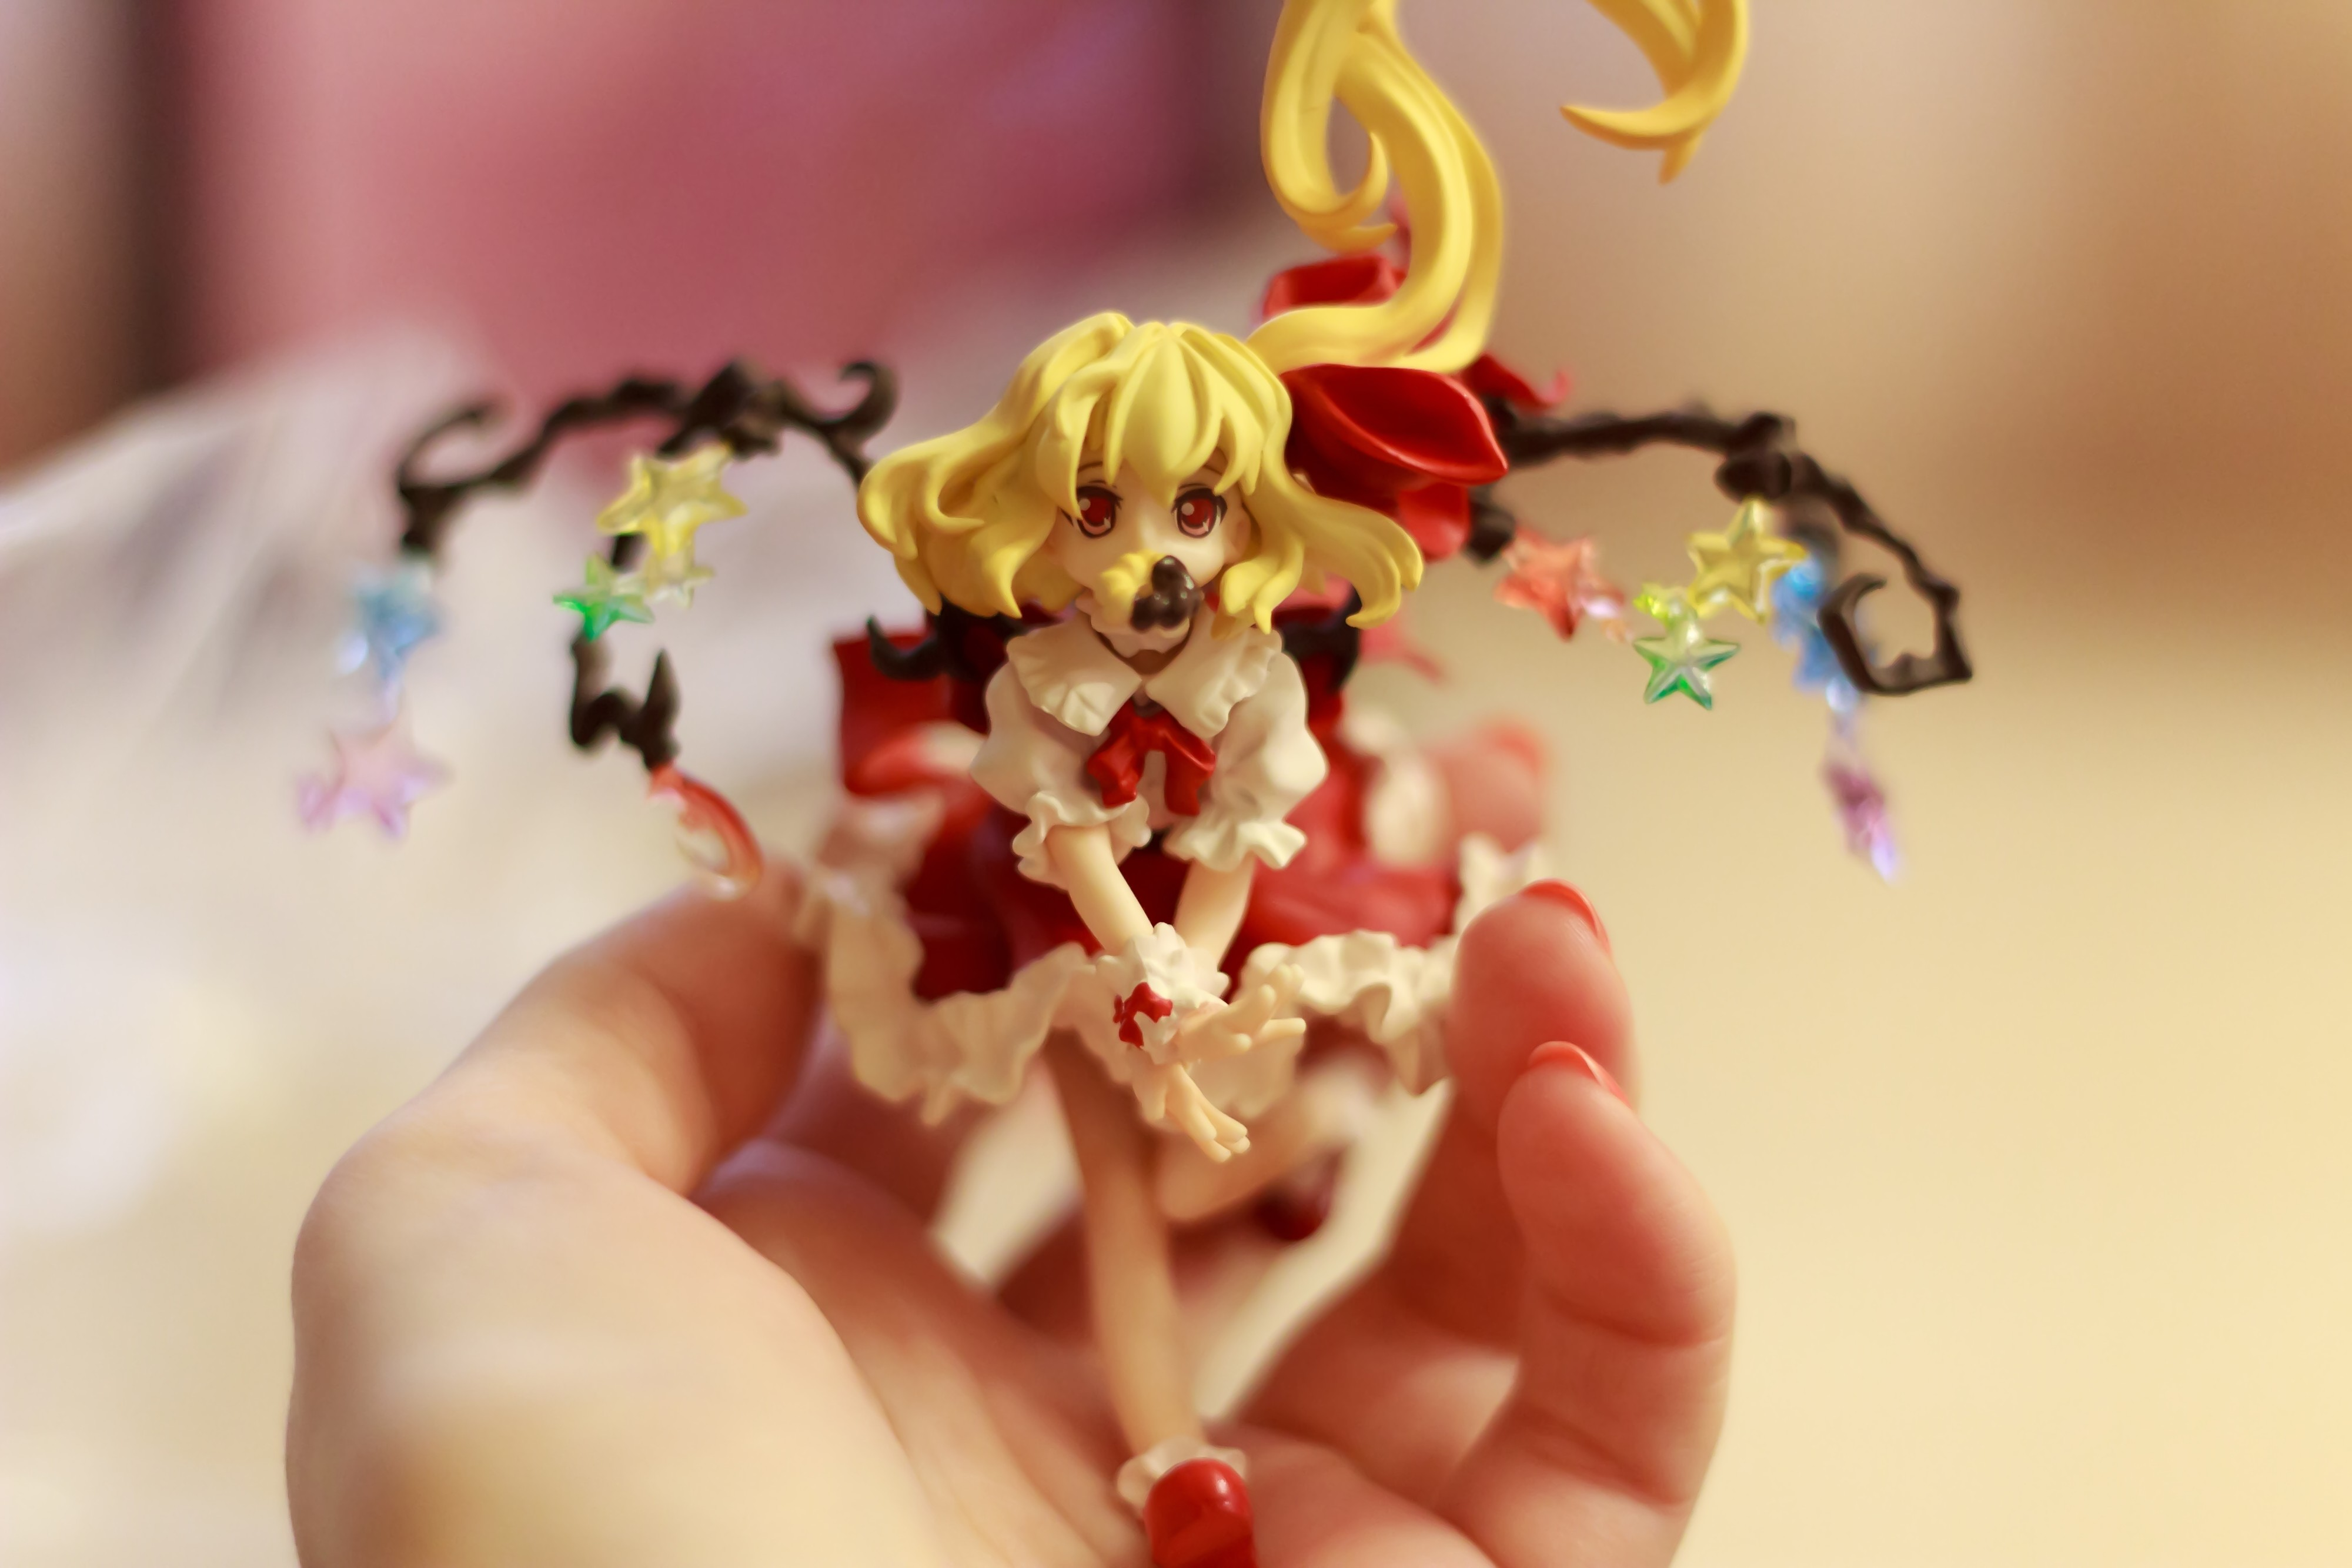 touhou_project orchid_seed flandre_scarlet team_shanghai_alice moenori